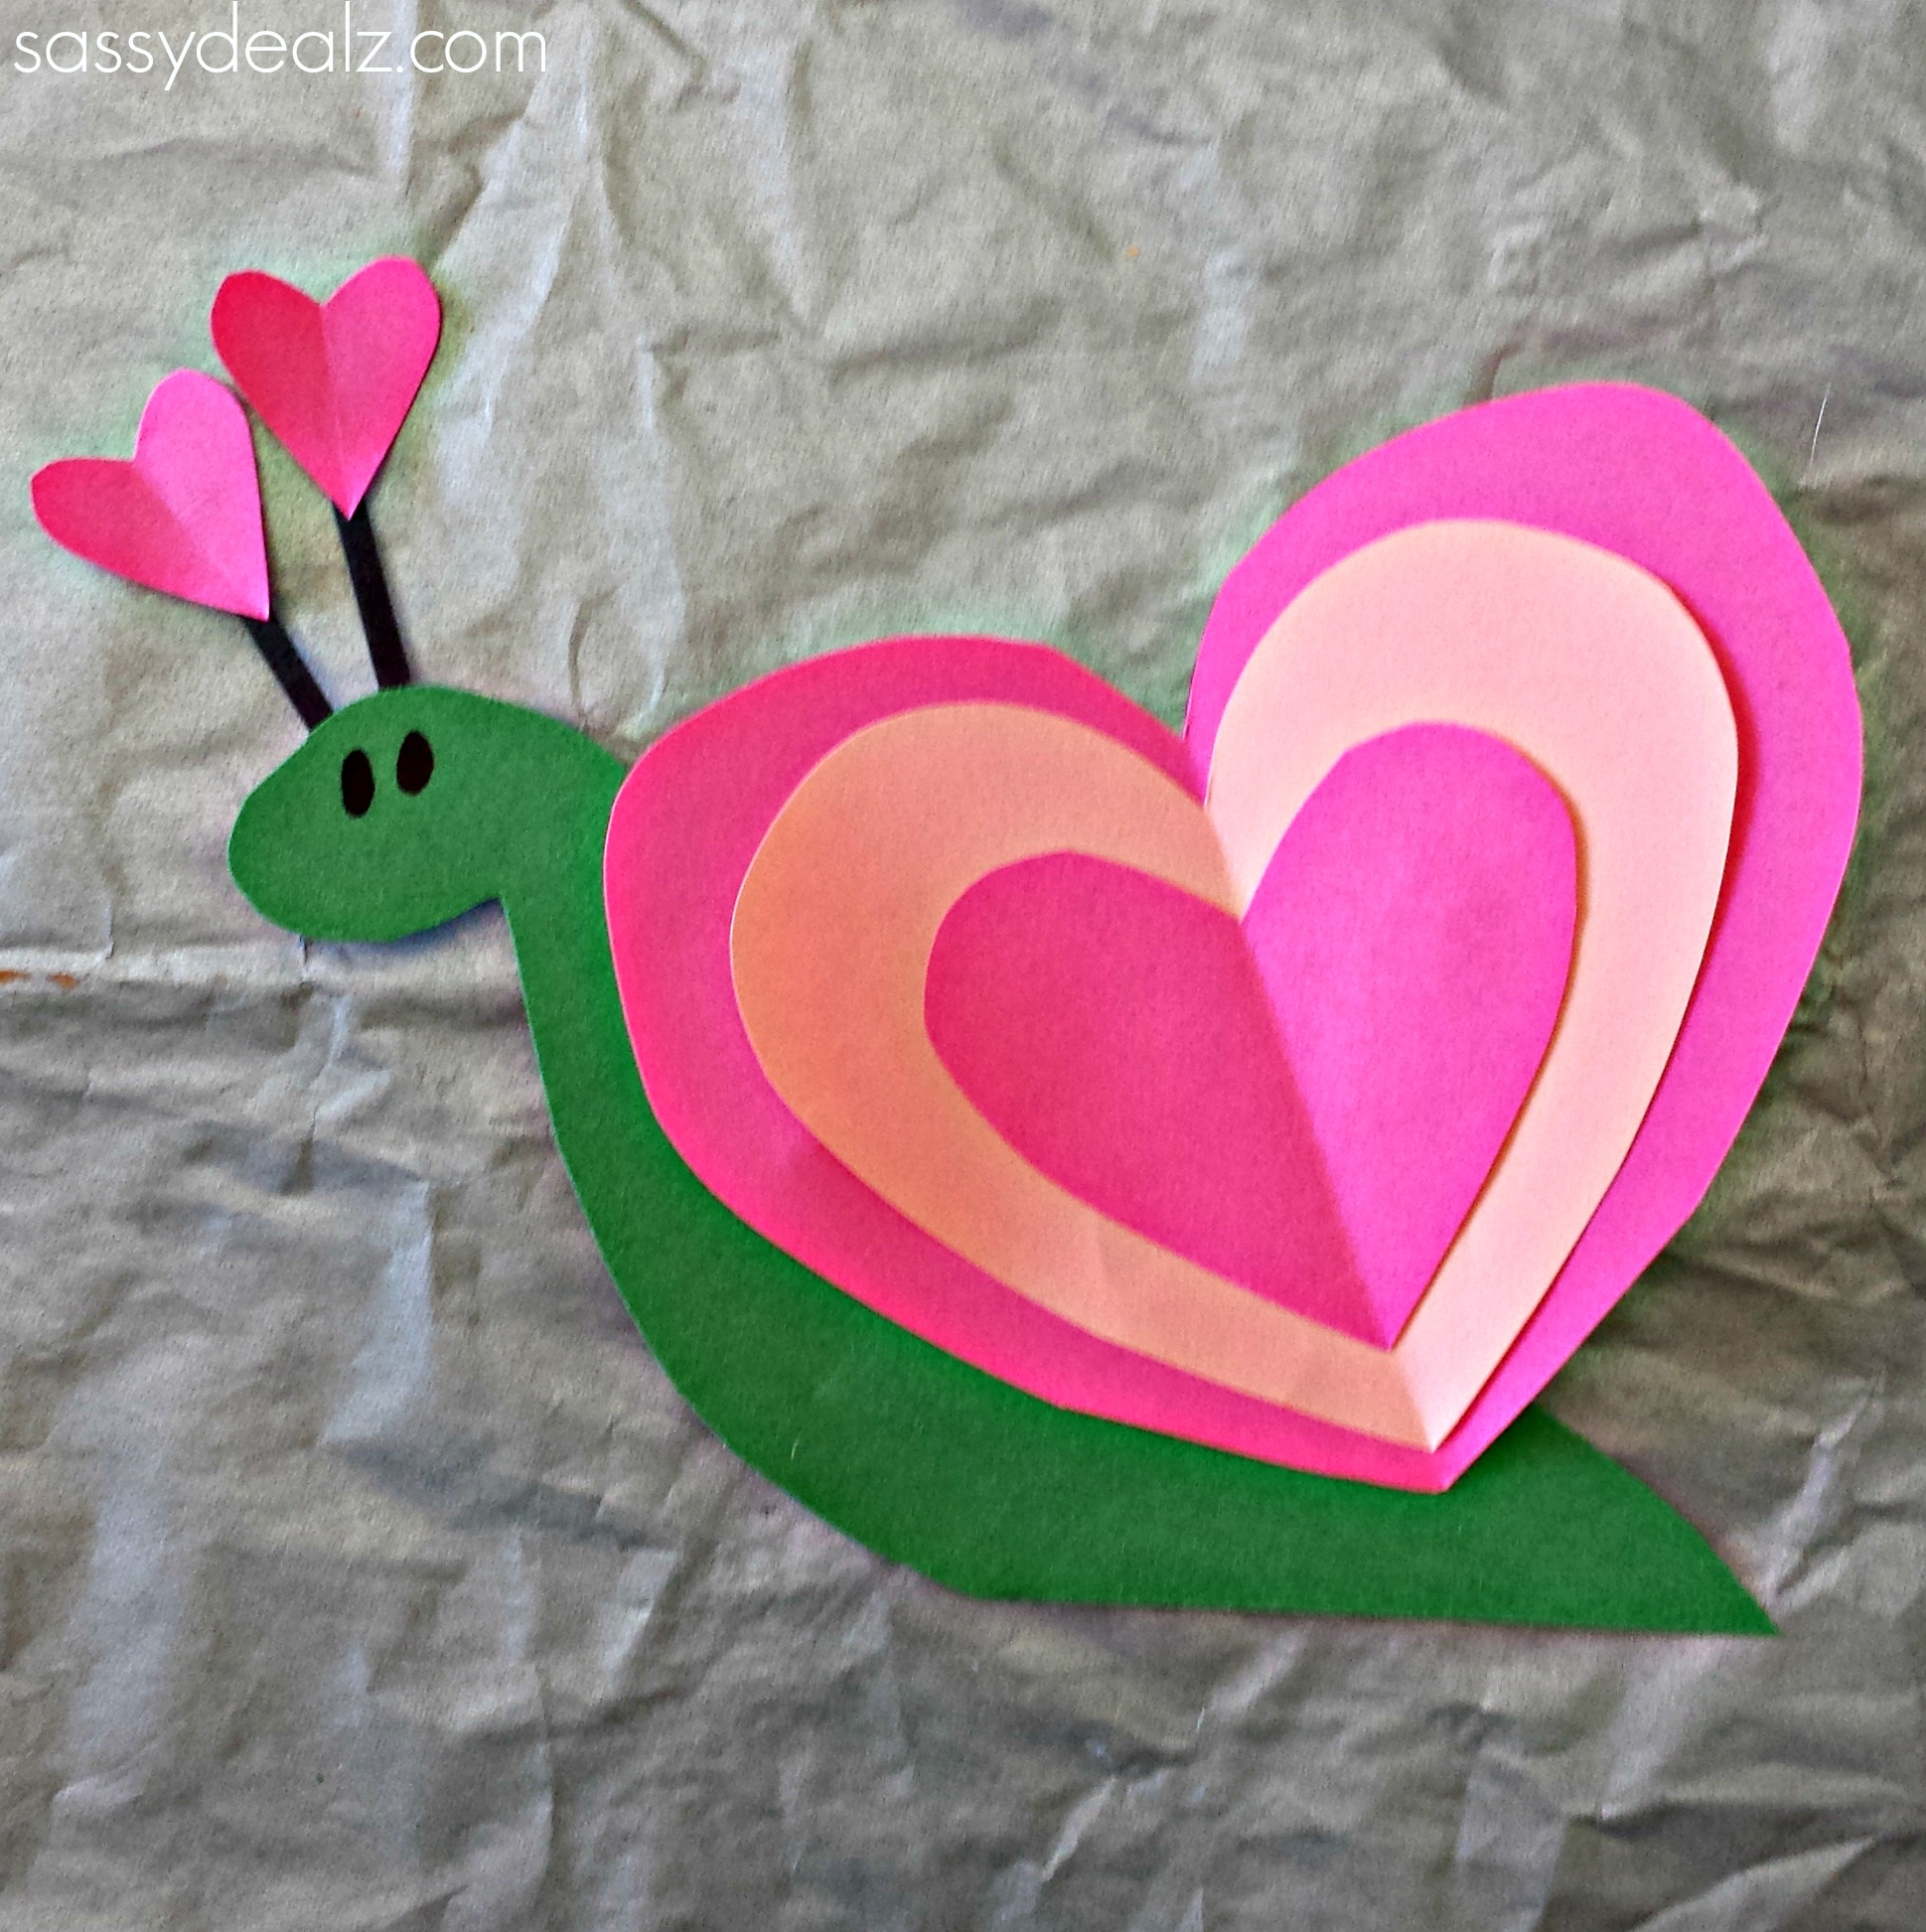 List of easy valentine 39 s day crafts for kids crafty morning for Valentine crafts for kindergarteners